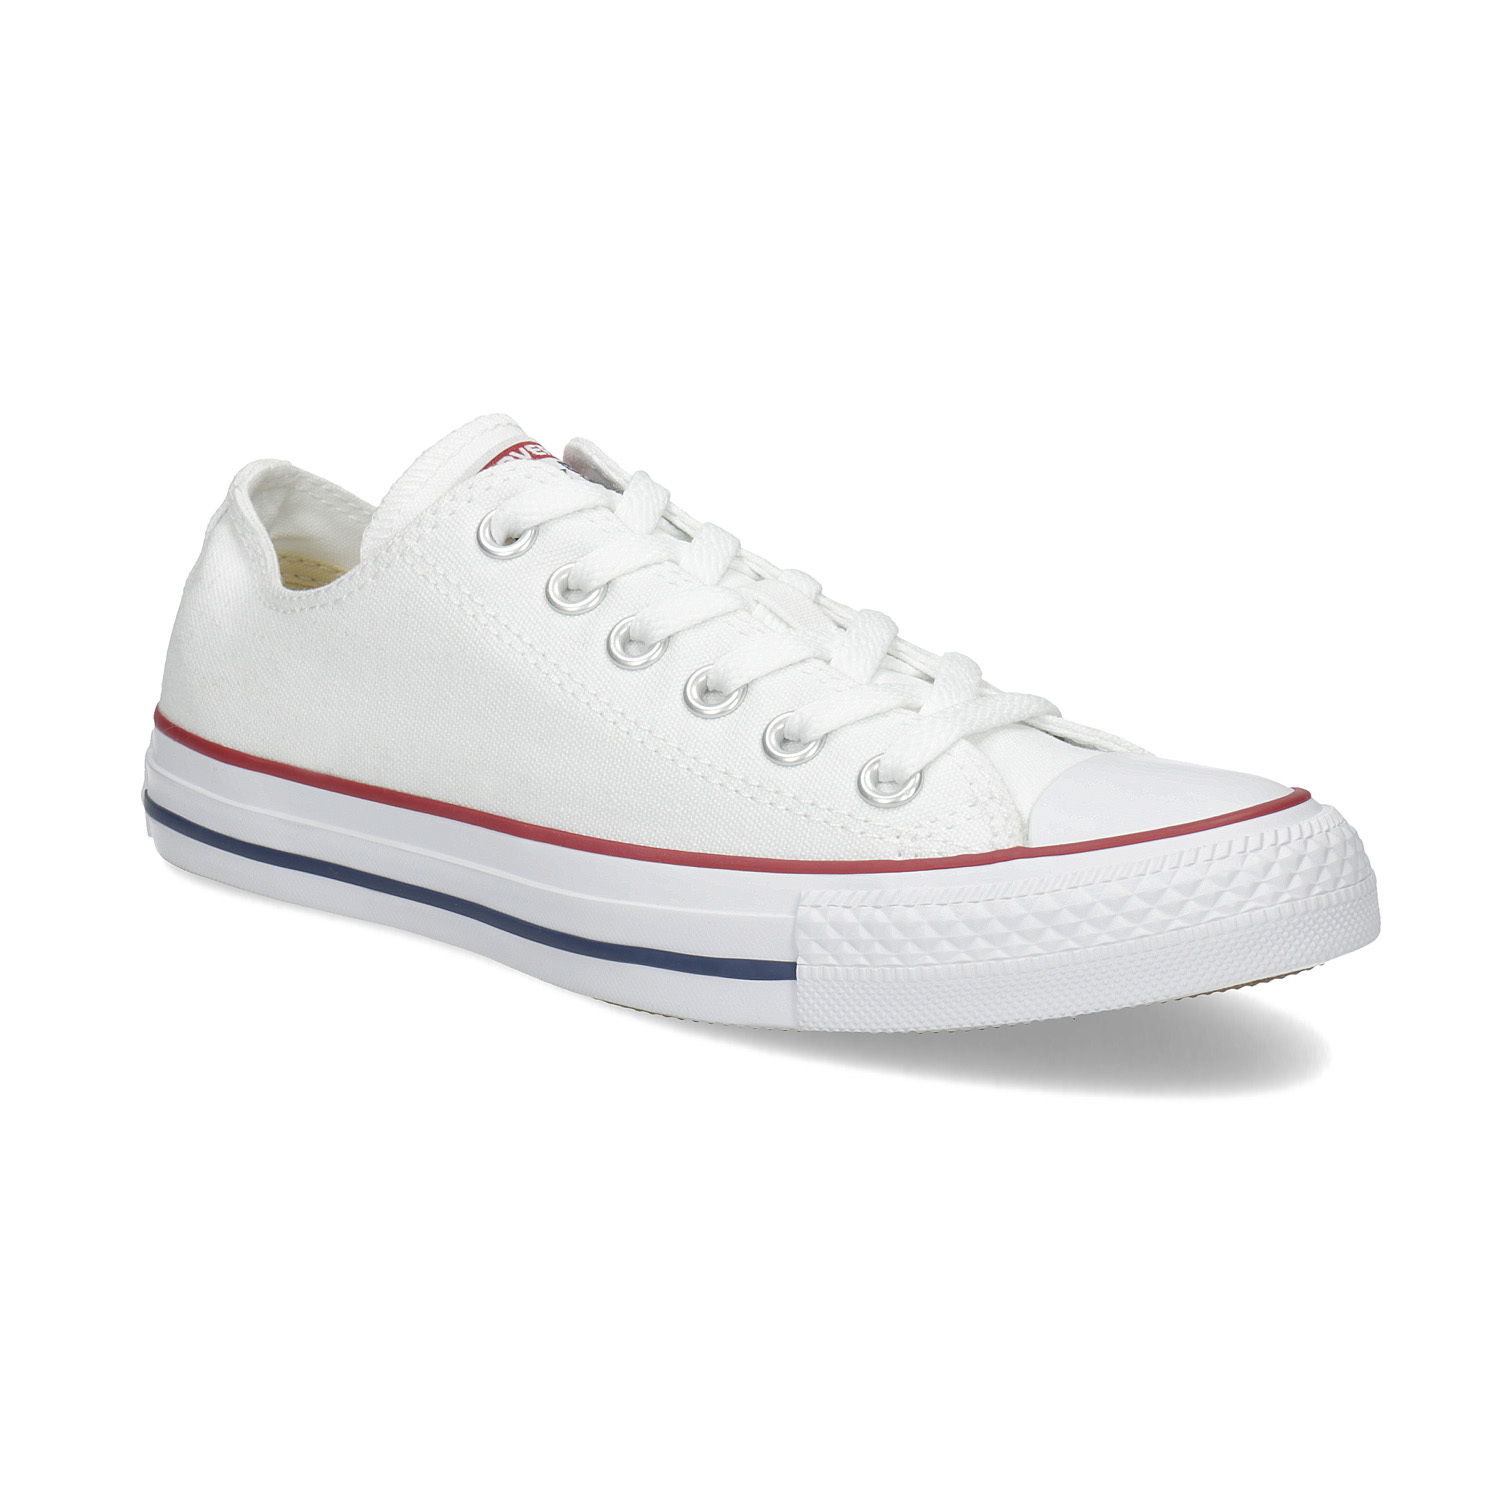 471b6d3903 Converse Ladies  tennis shoes - New in